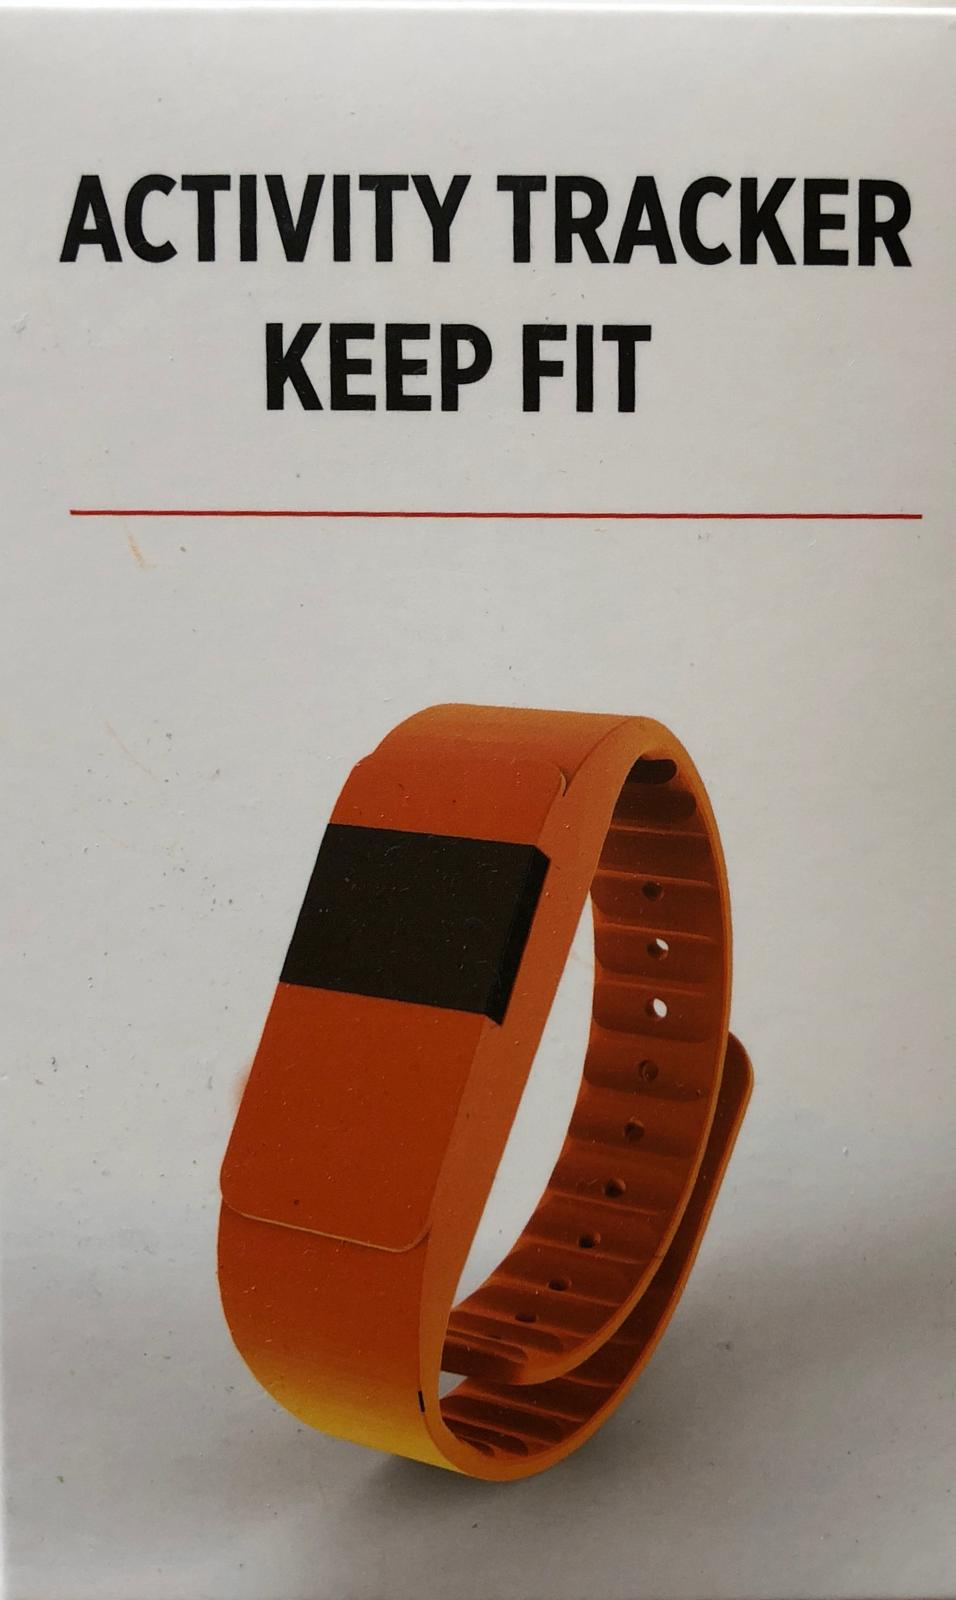 Activity tracker to stay heart-healthy!